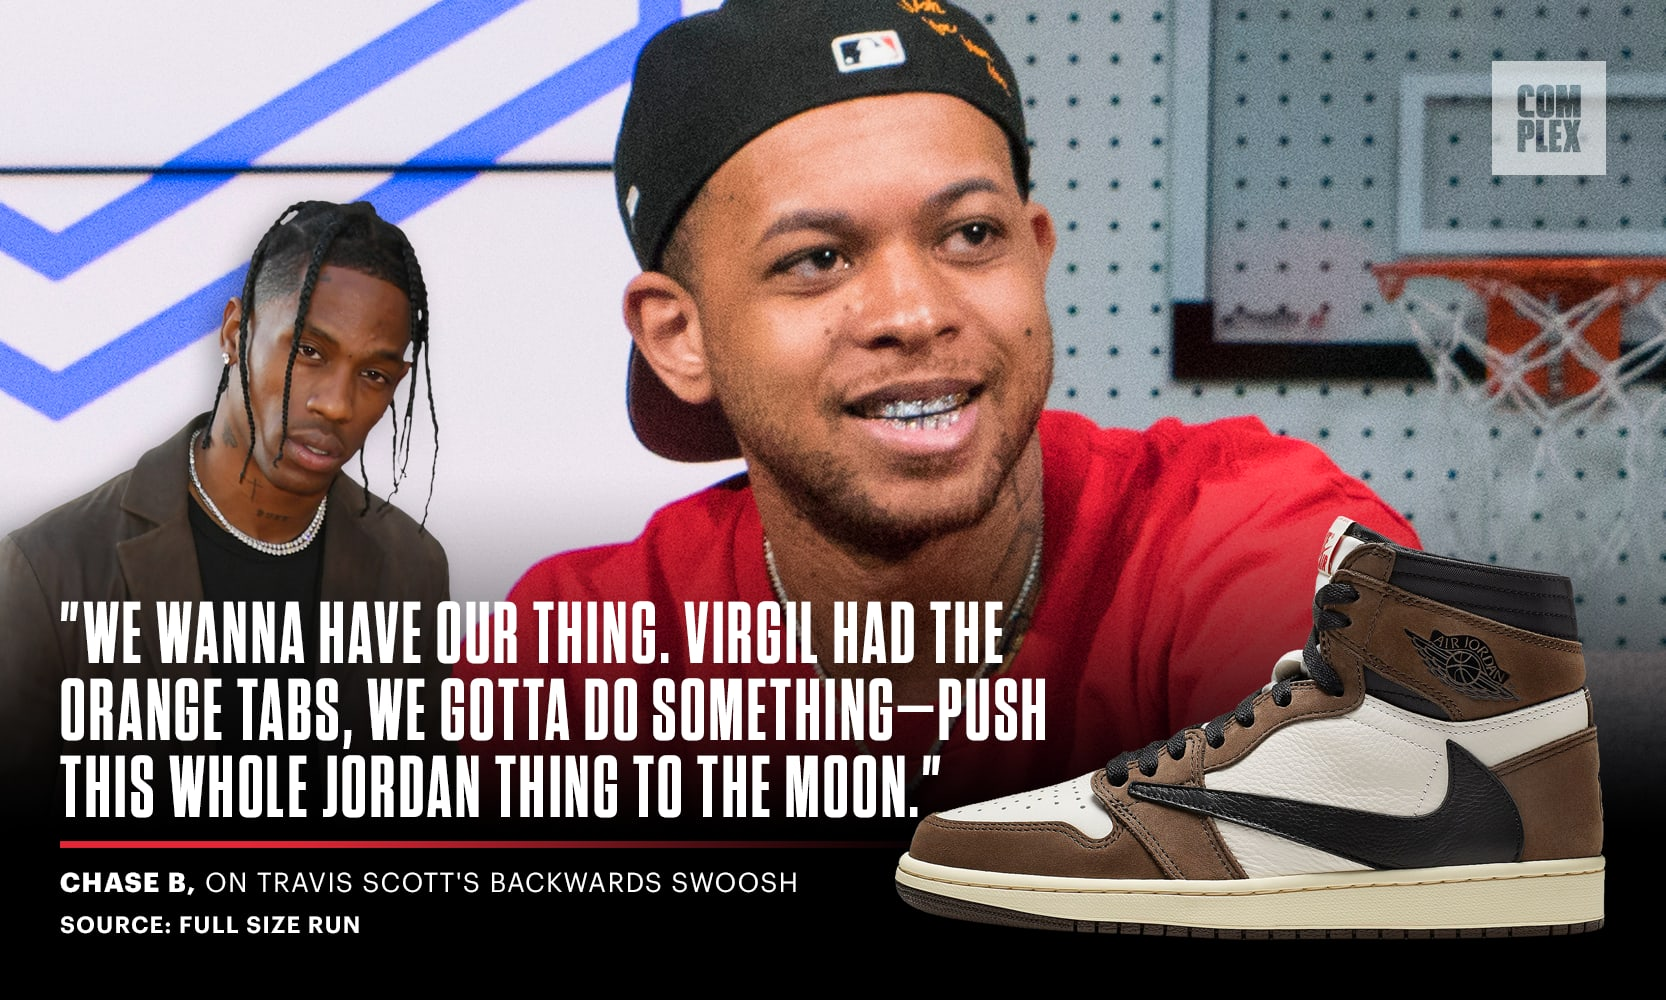 Chase B on Travis Scott's Backwards Swoosh